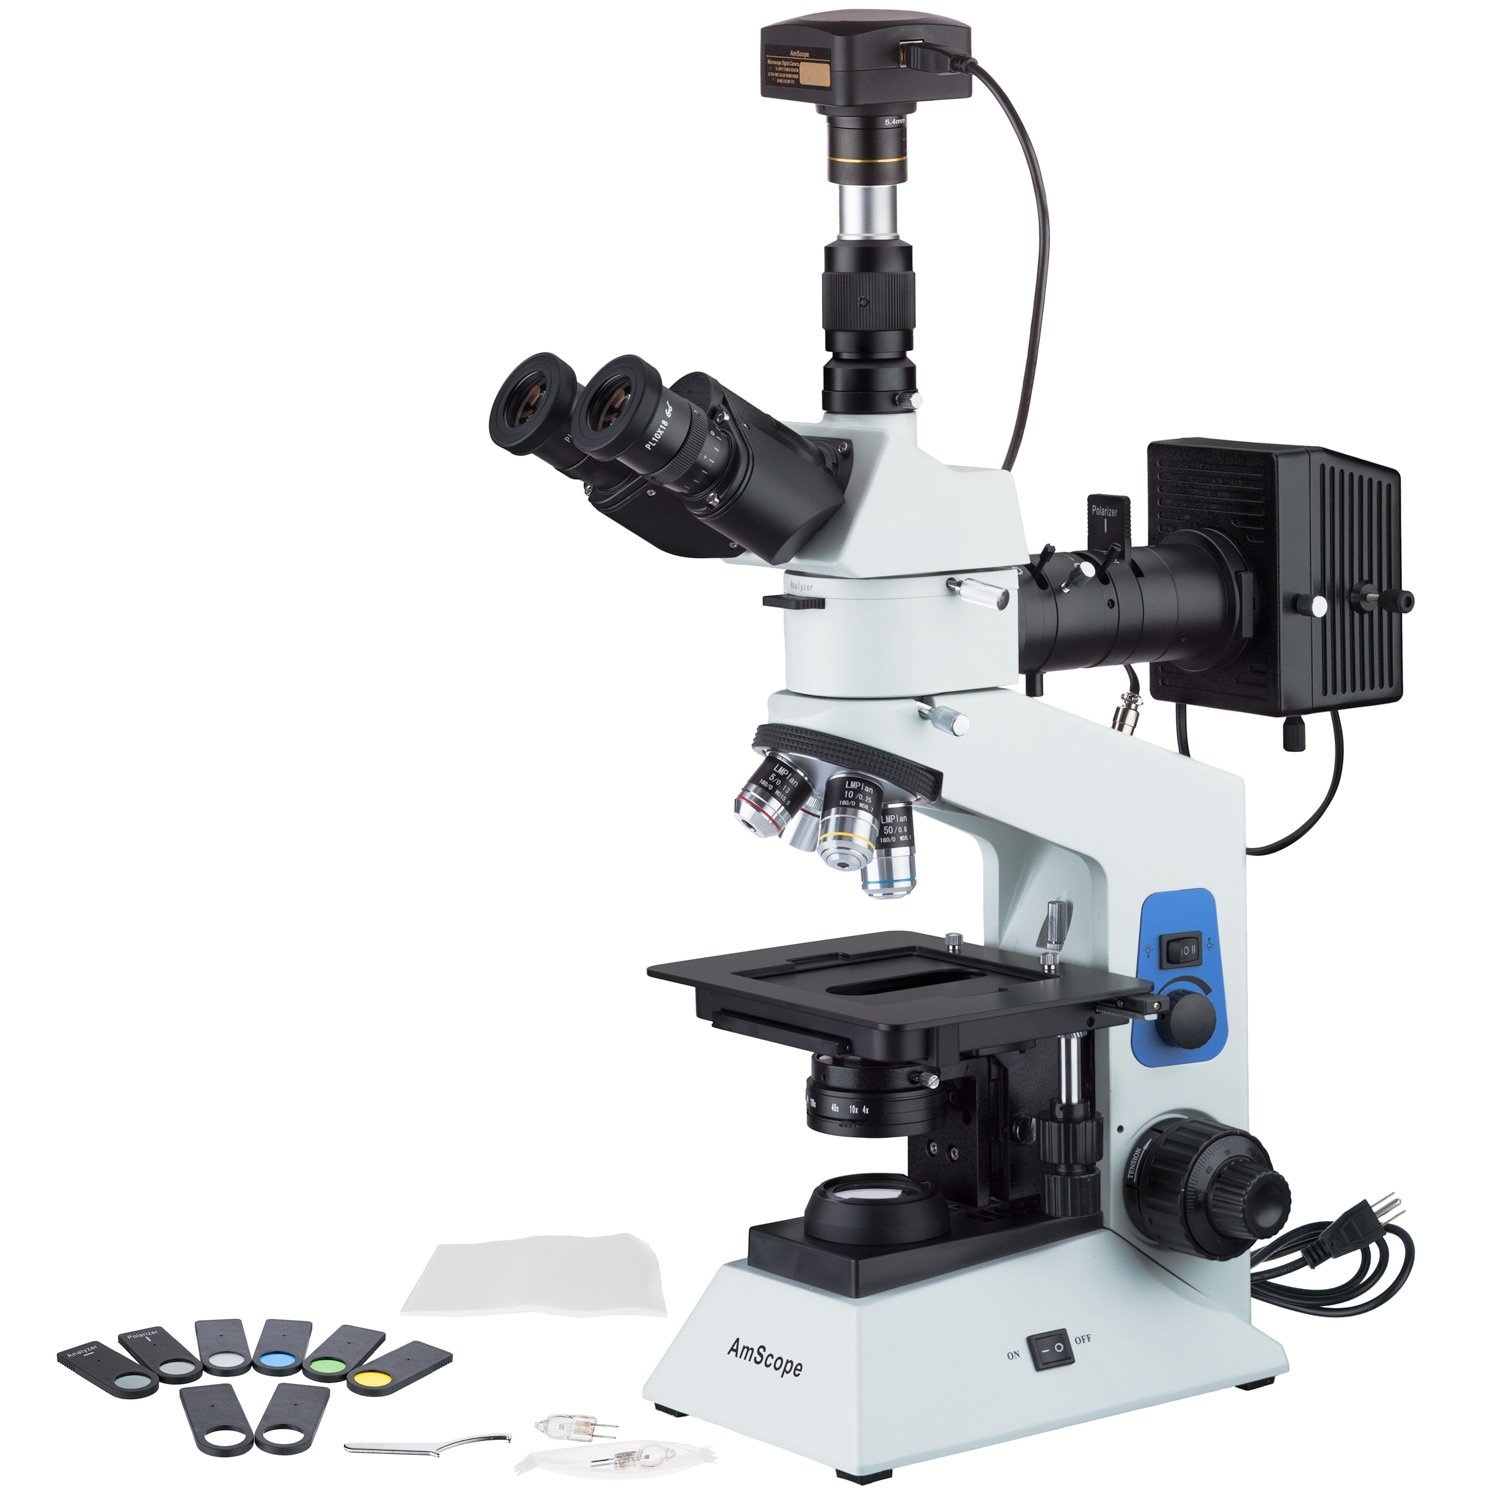 AmScope 40x-800x Polarizing Metallurgical Microscope w Top and Bottom Lights + 14MP USB3.0 Camera by AmScope